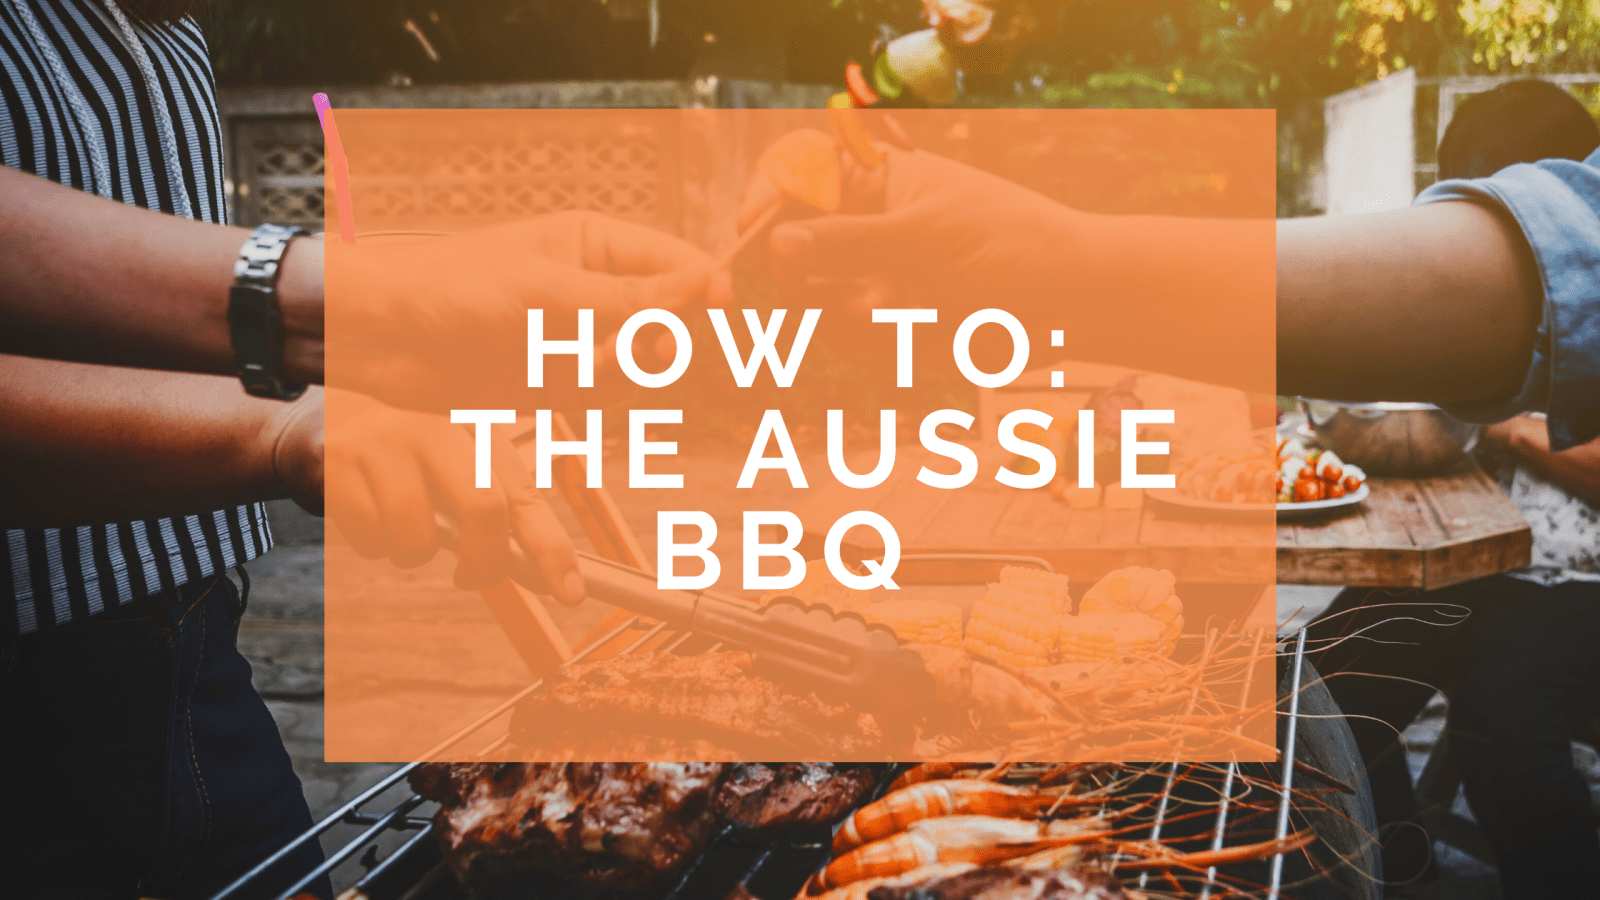 How To: The Perfect Aussie BBQ